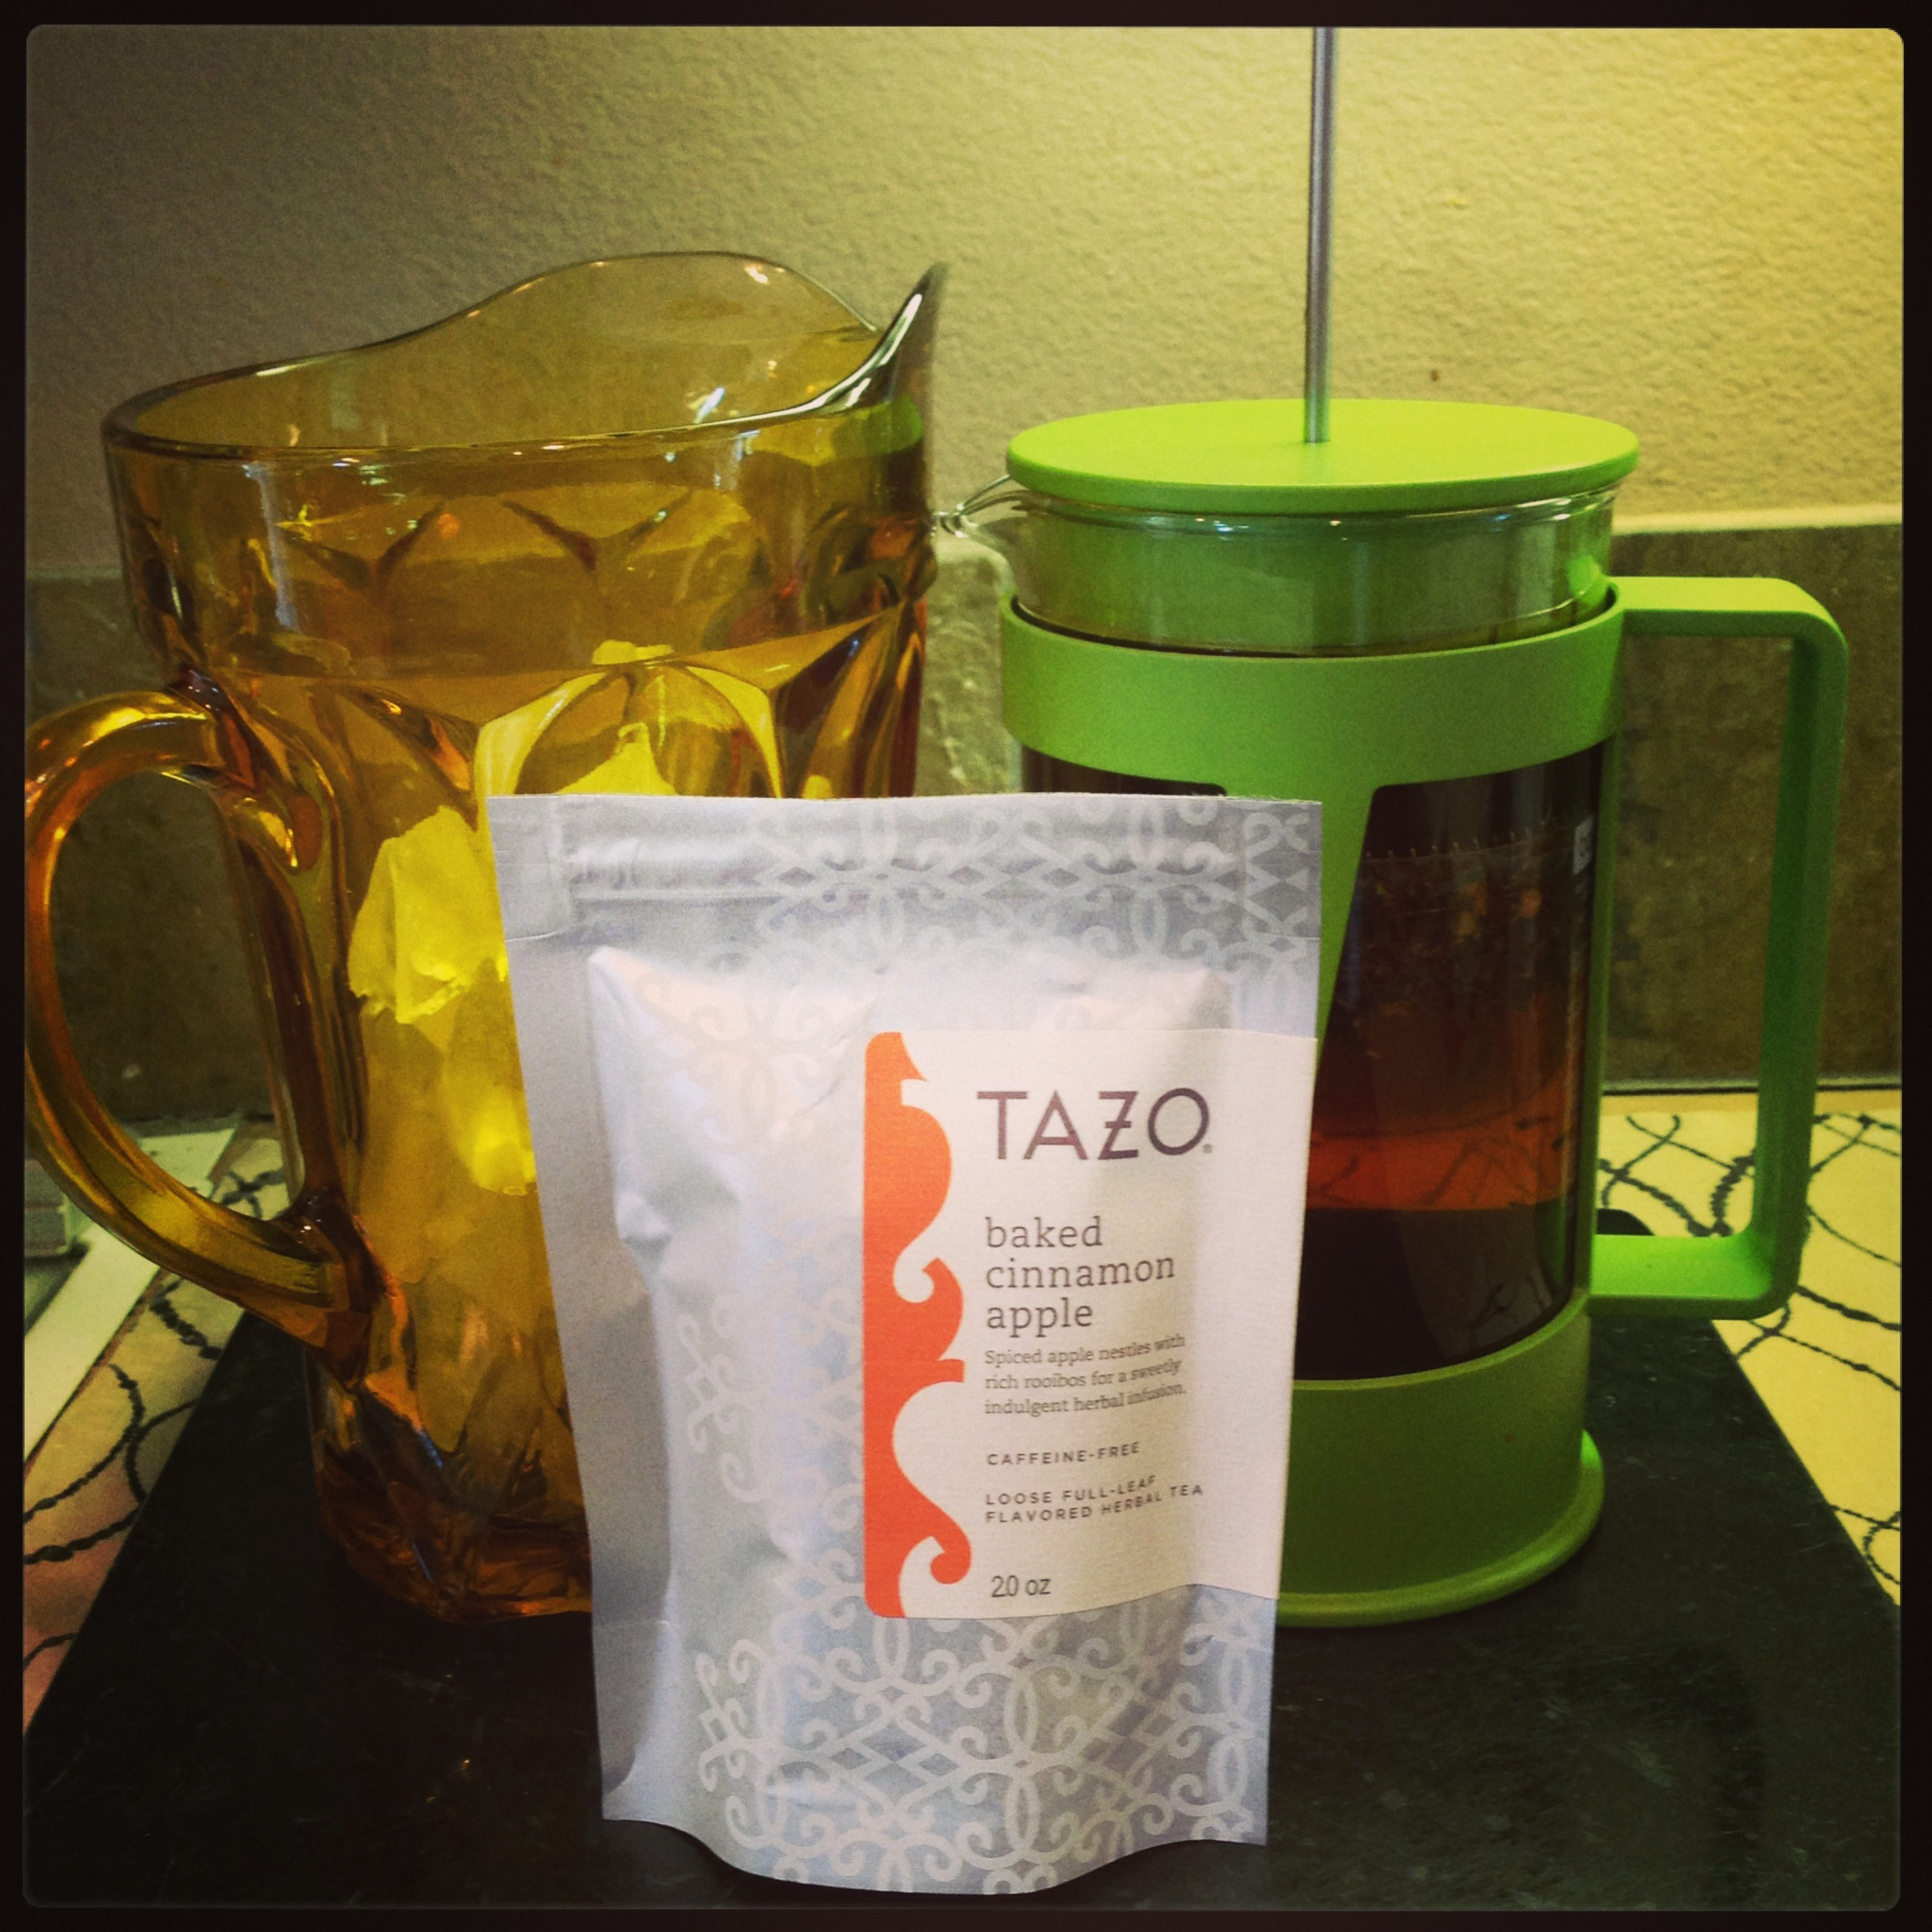 Tazo Tea baked cinnamon apple ice tea